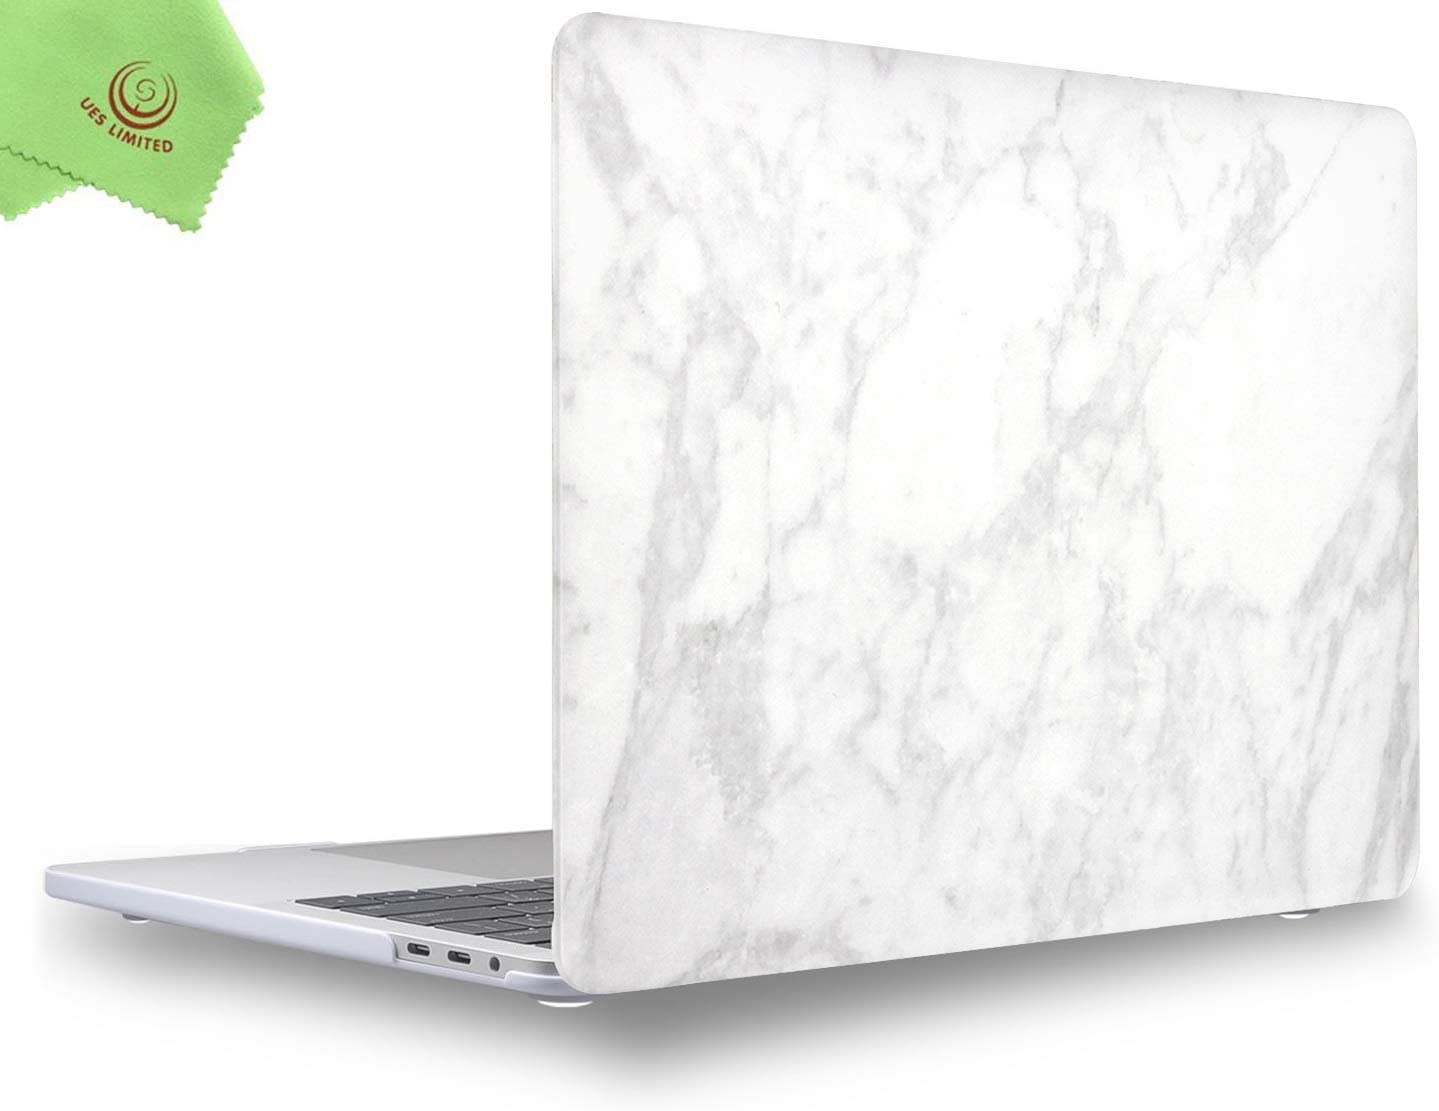 UESWILL MacBook Pro 13 inch Case 2020 2019 2018 2017 2016 Release A2289 A2251 A2159 A1989 A1706 A1708, Marble Pattern Hard Case for MacBook Pro 13 inch, 2/4 Thunderbolt 3 Ports (USB-C), White